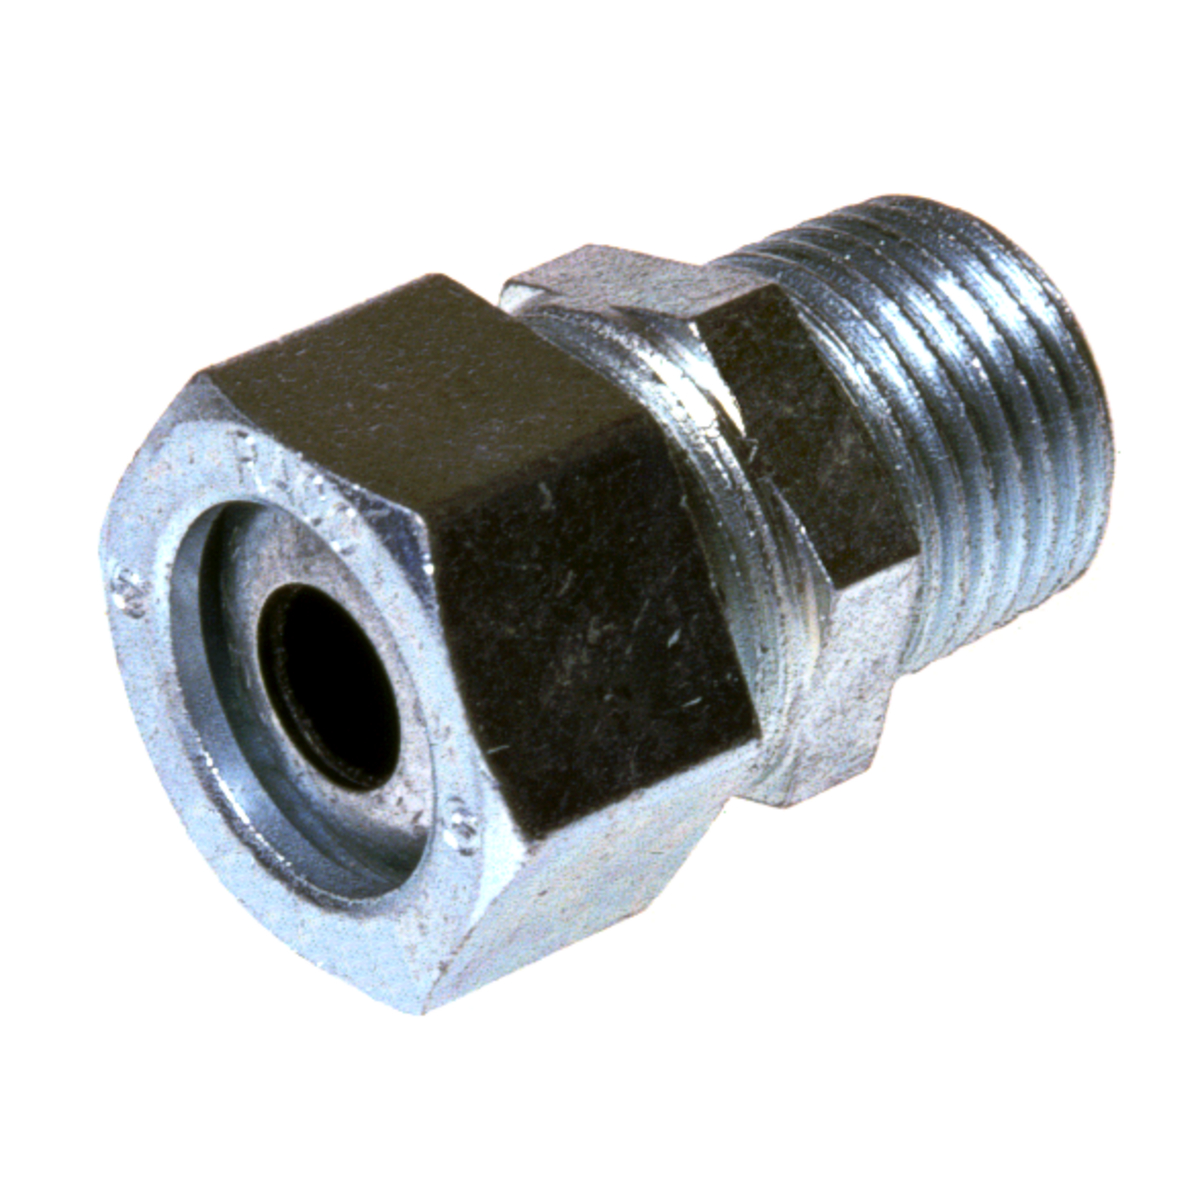 Hubbell-Raco 3704-3 Cord Connector